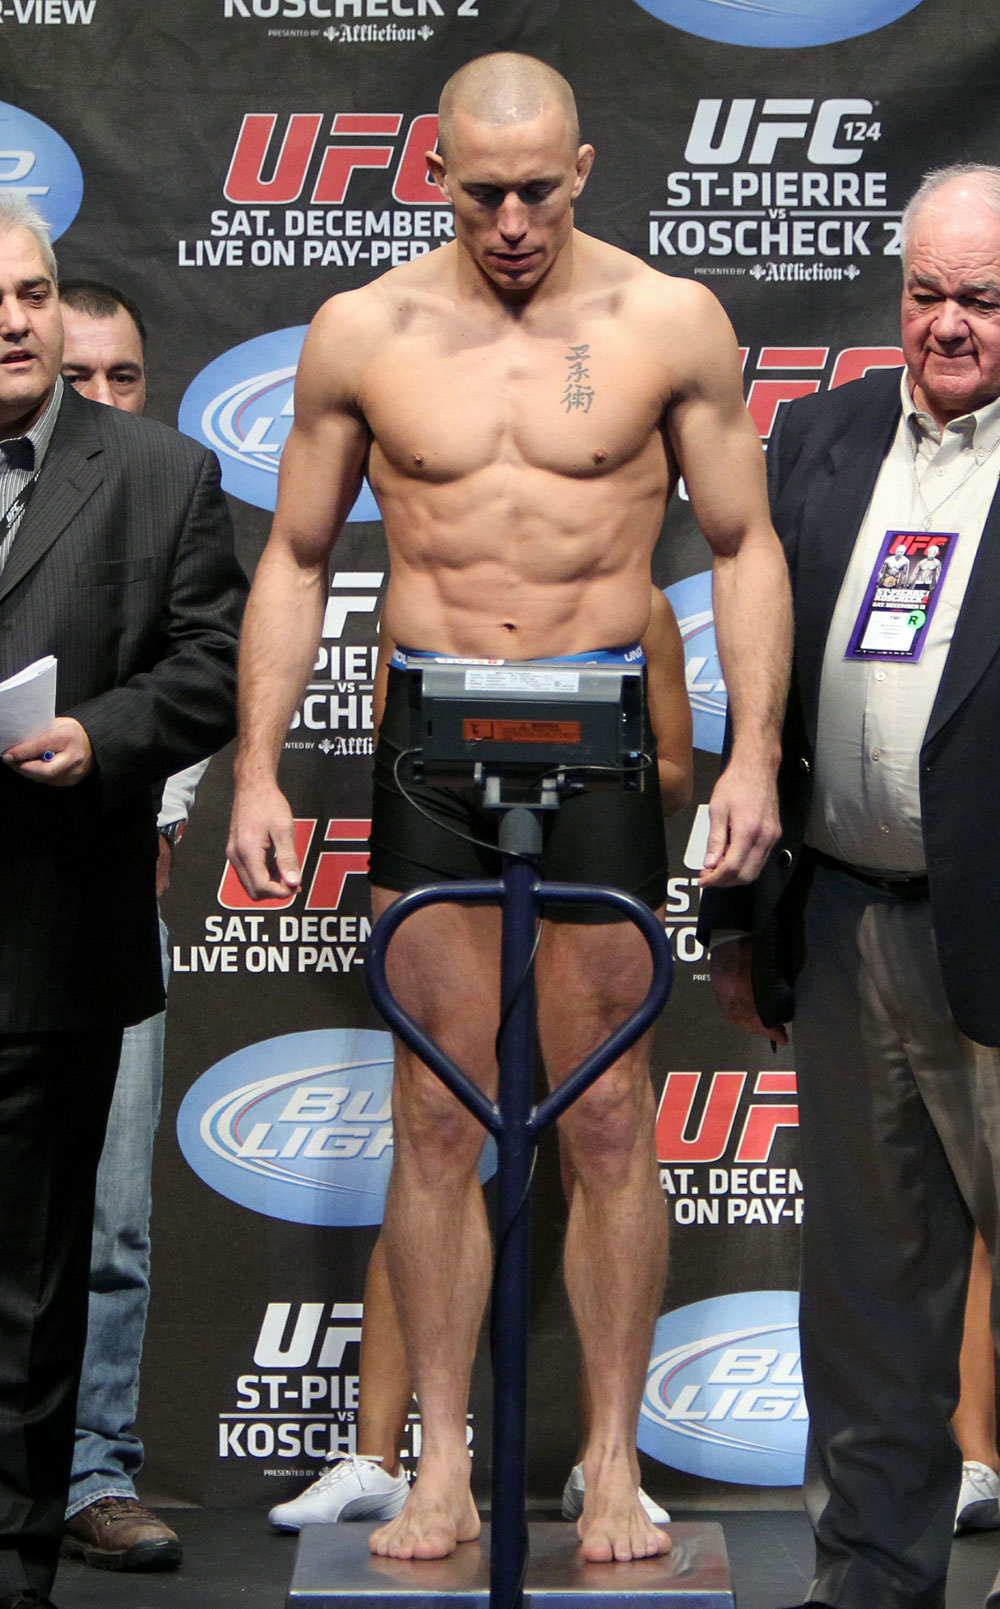 UFC 124 Weigh-in: Georges St-Pierre weighs in at 170lbs.